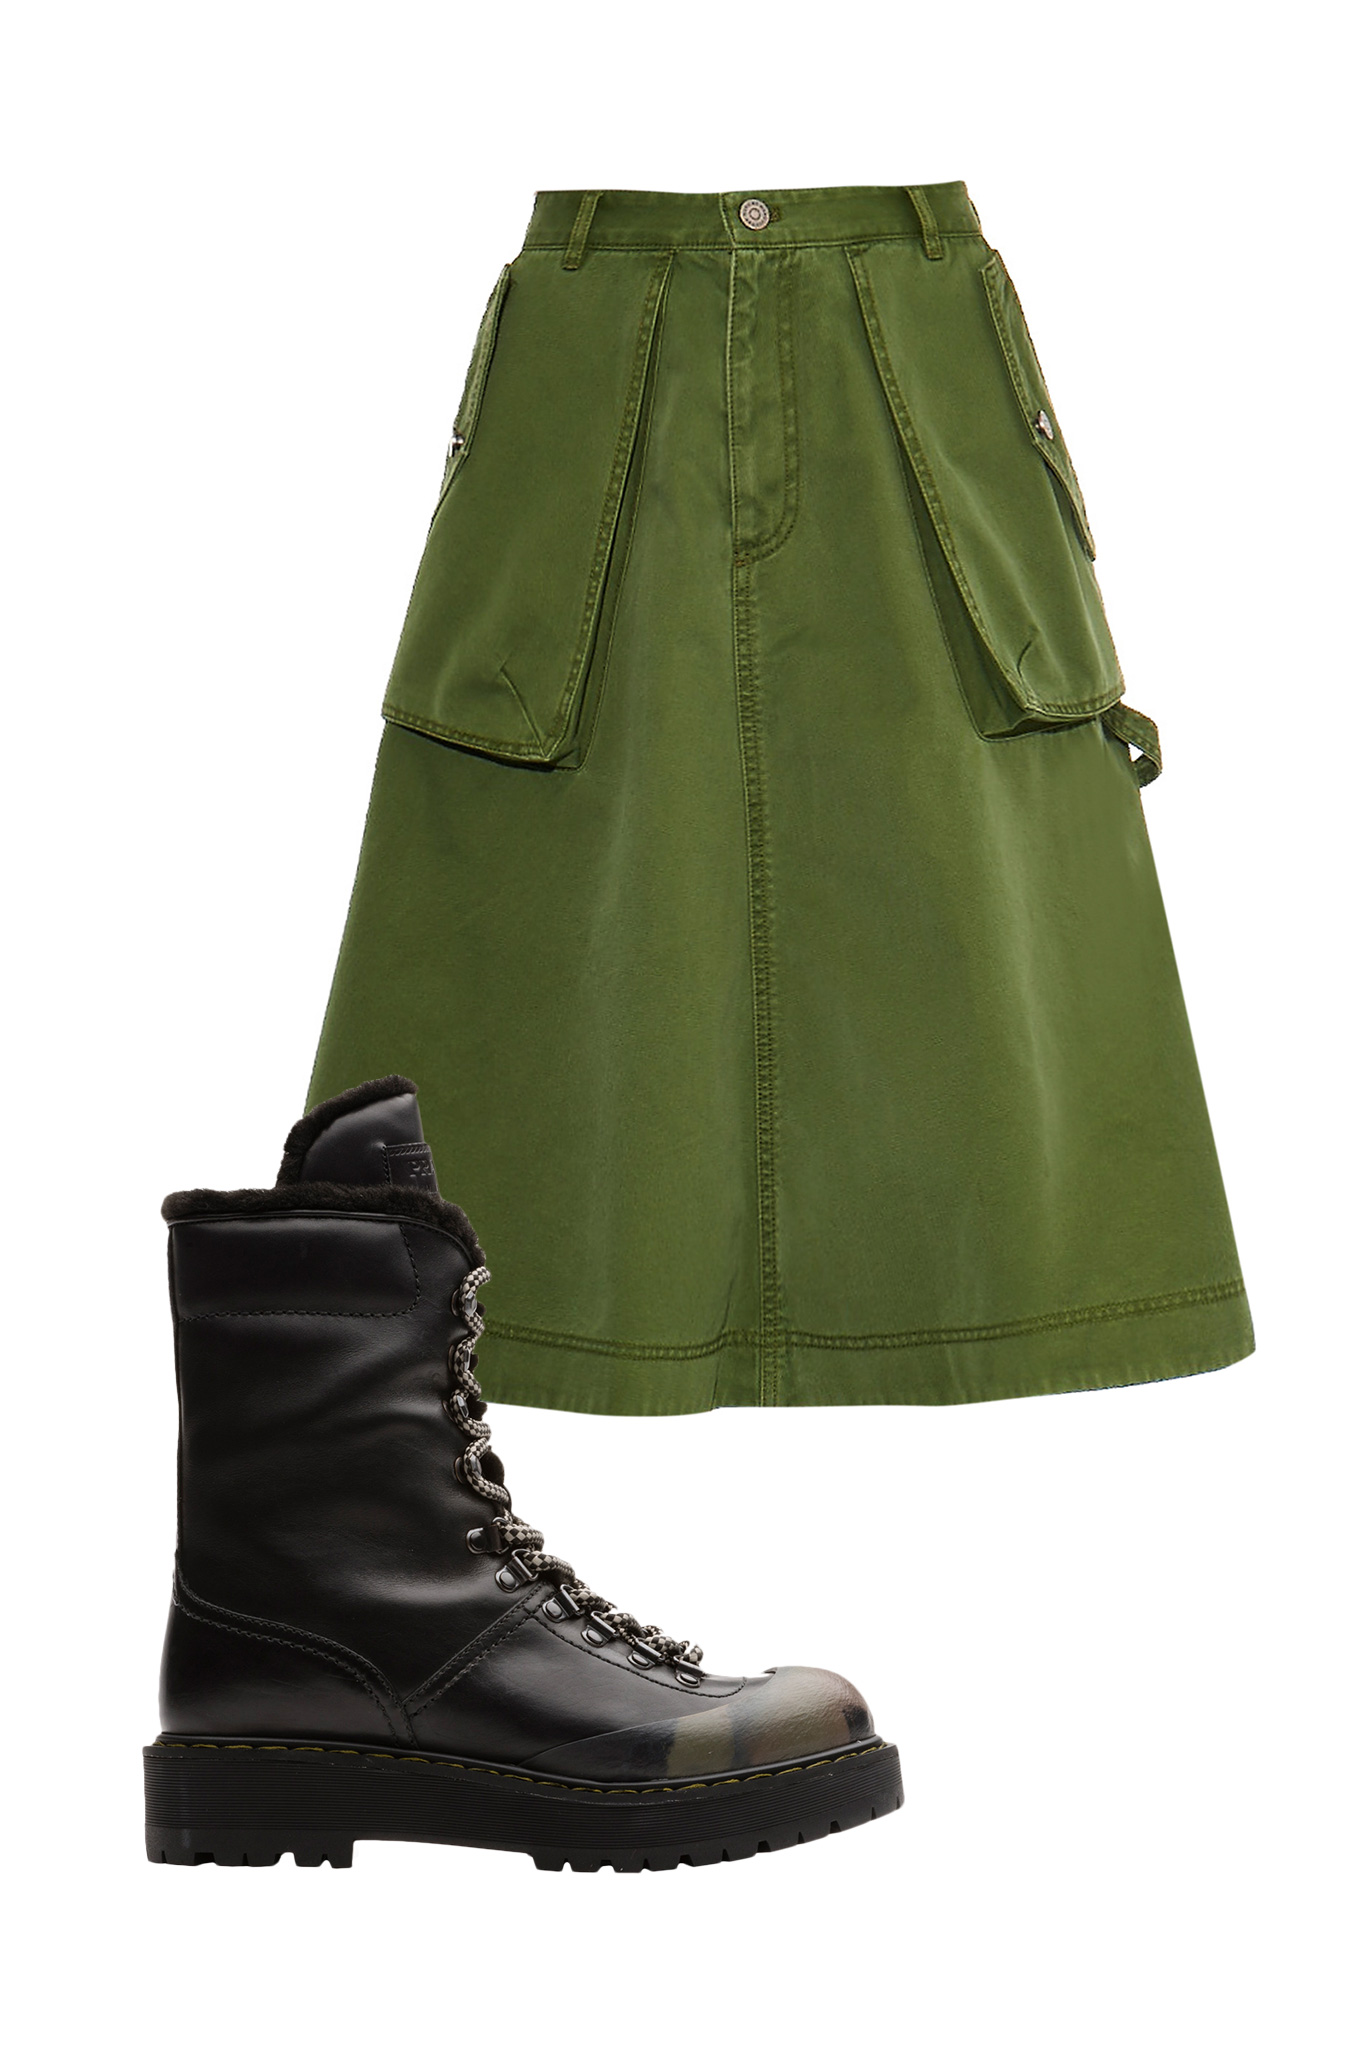 02-04-military-spring-shopping-picks-prada.jpg